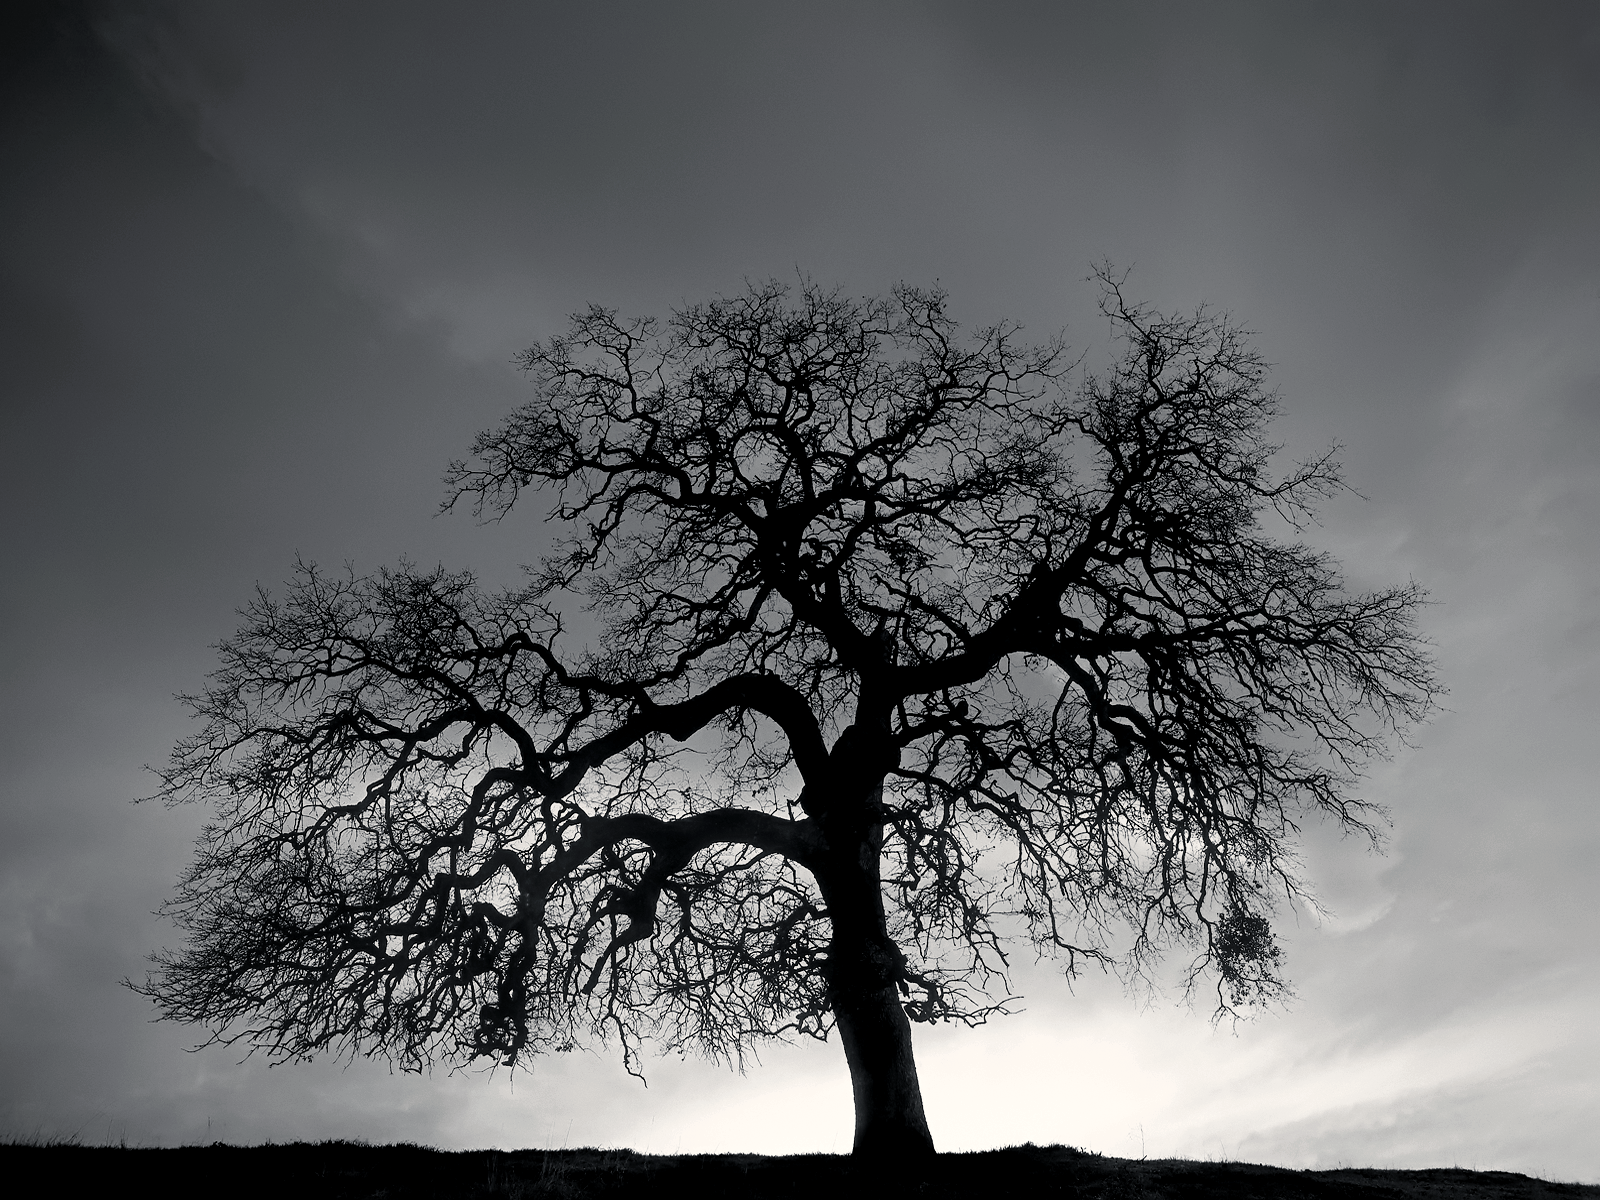 Black And White Tree Hill Wallpaper Black And White Tree White Tree Black And White Background